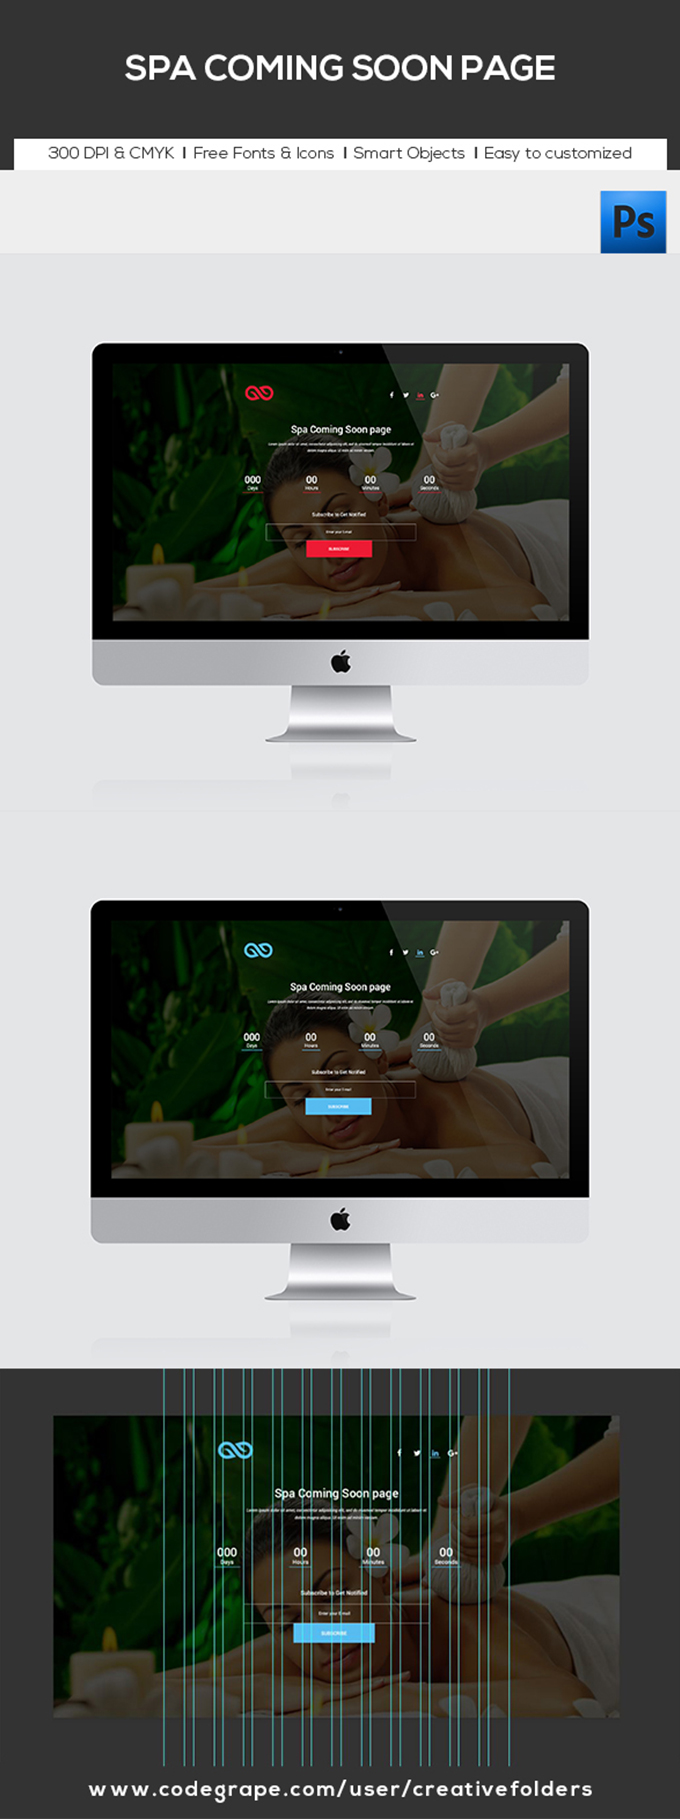 Spa Coming Soon Page PSD Template